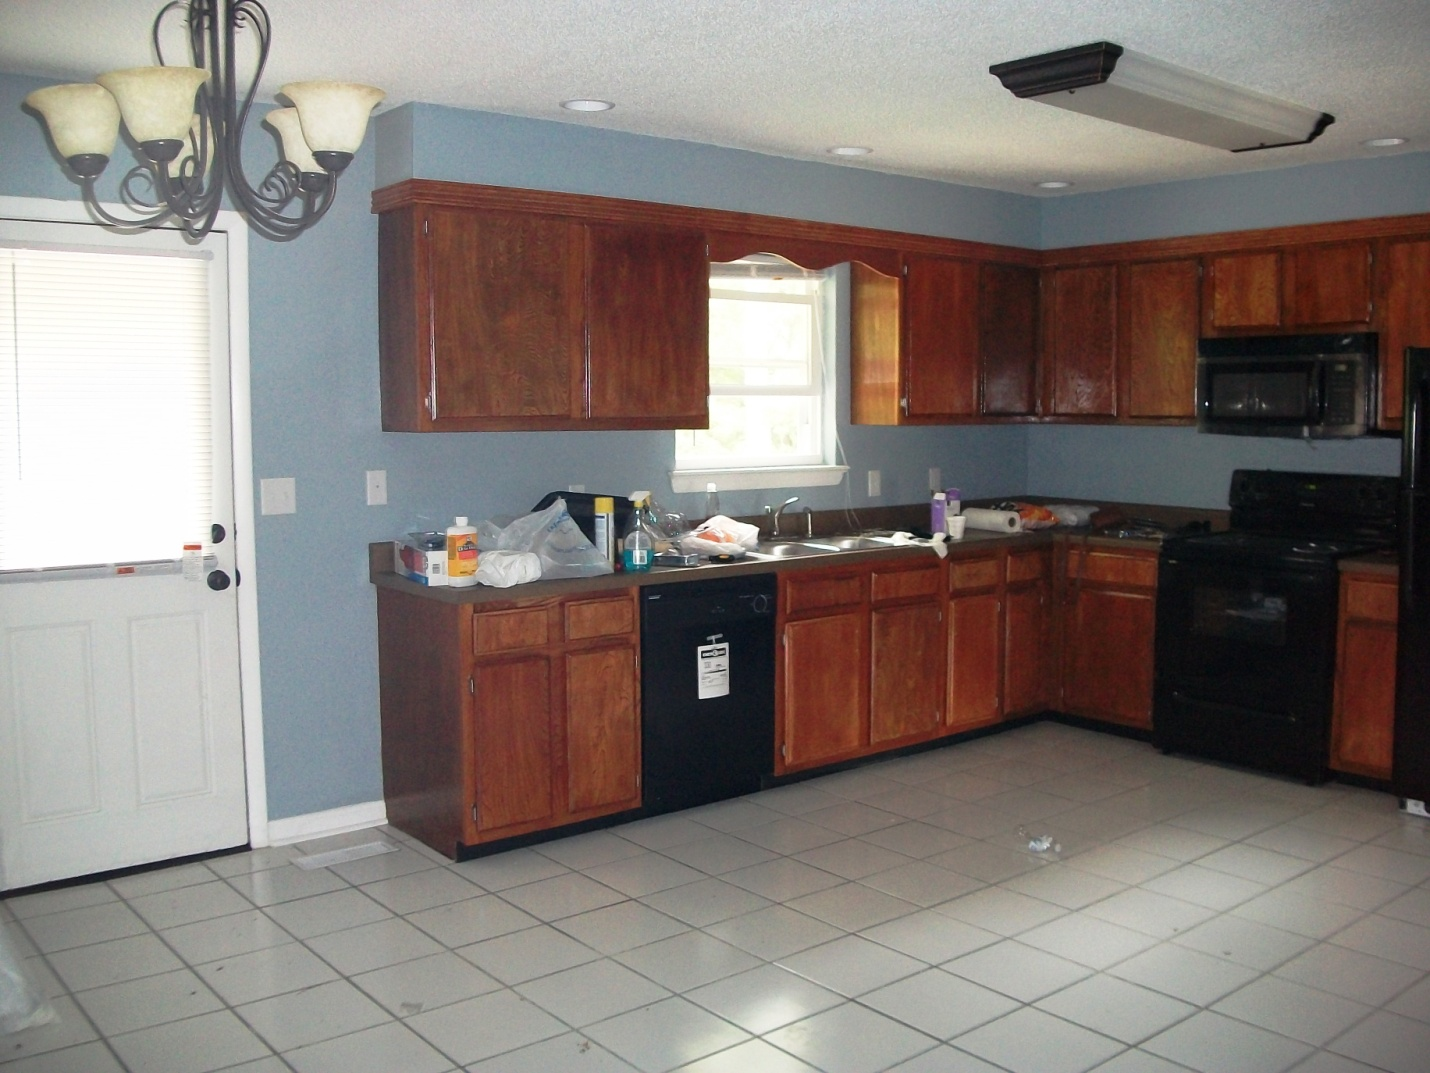 And I Wanted A Blue Kitchen To Add Some Red Accents Too However Did Not Love The Cabinets